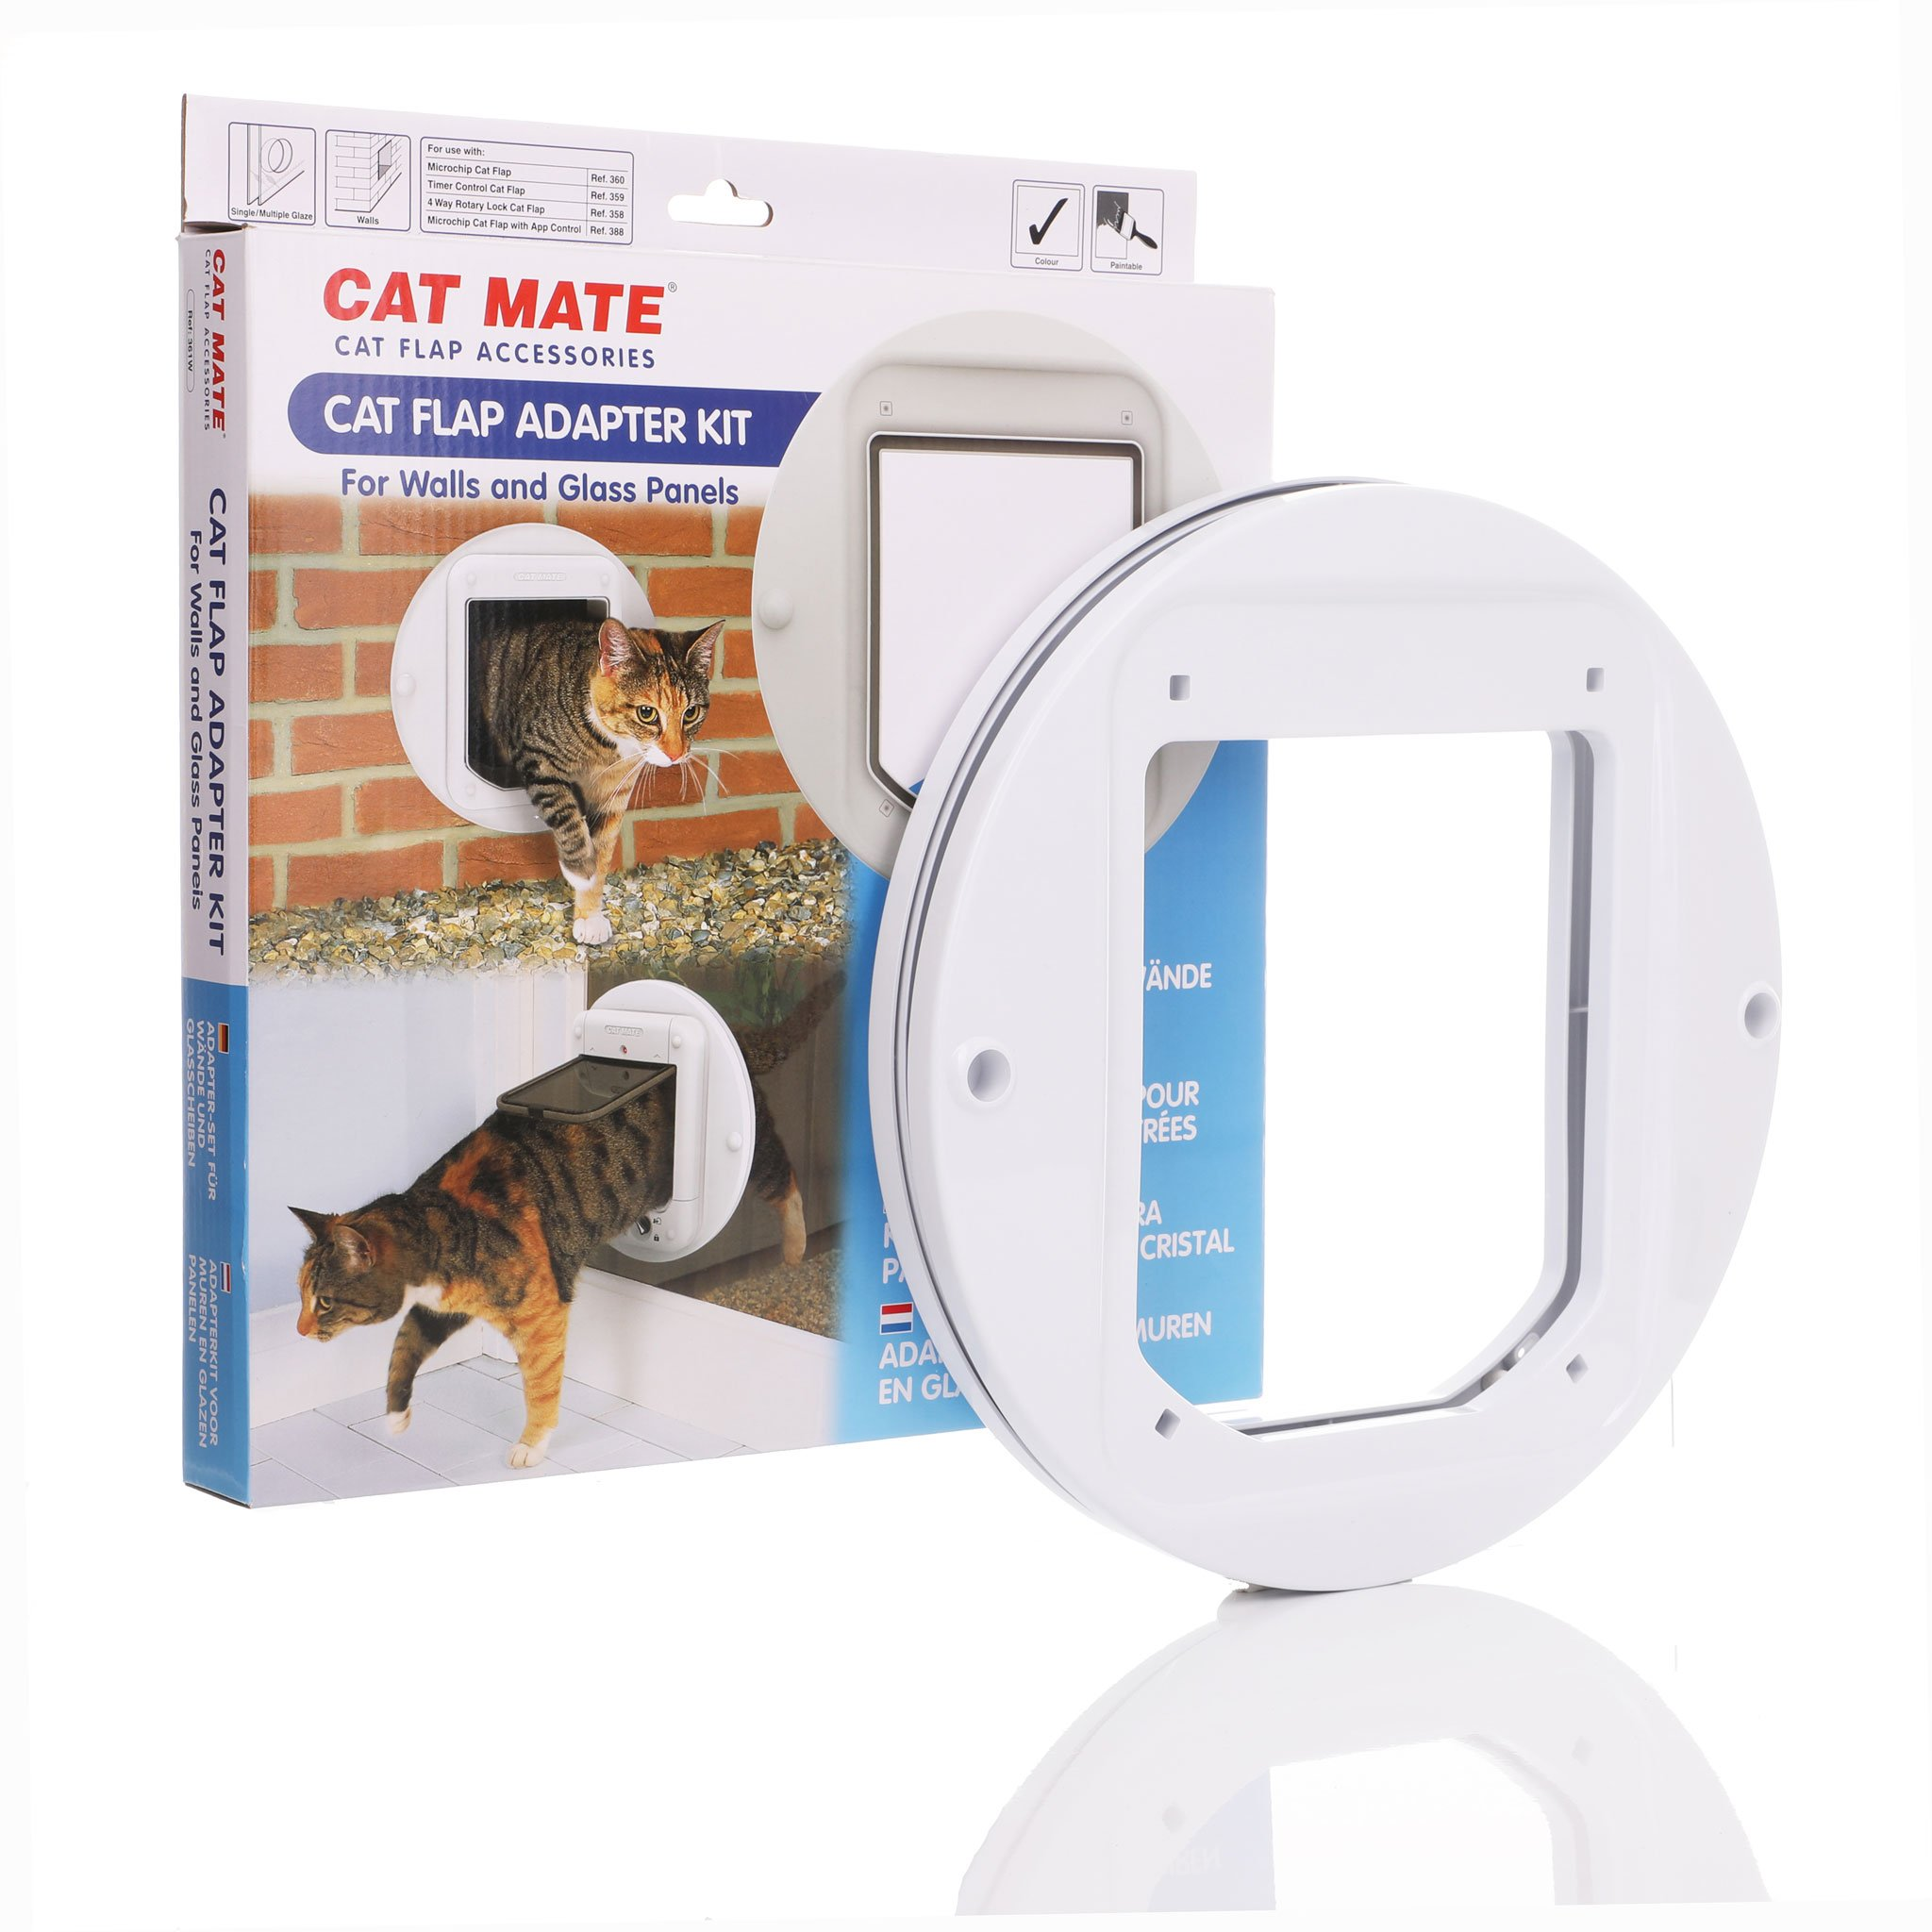 Frame used to install cat flaps in glass or through walls.